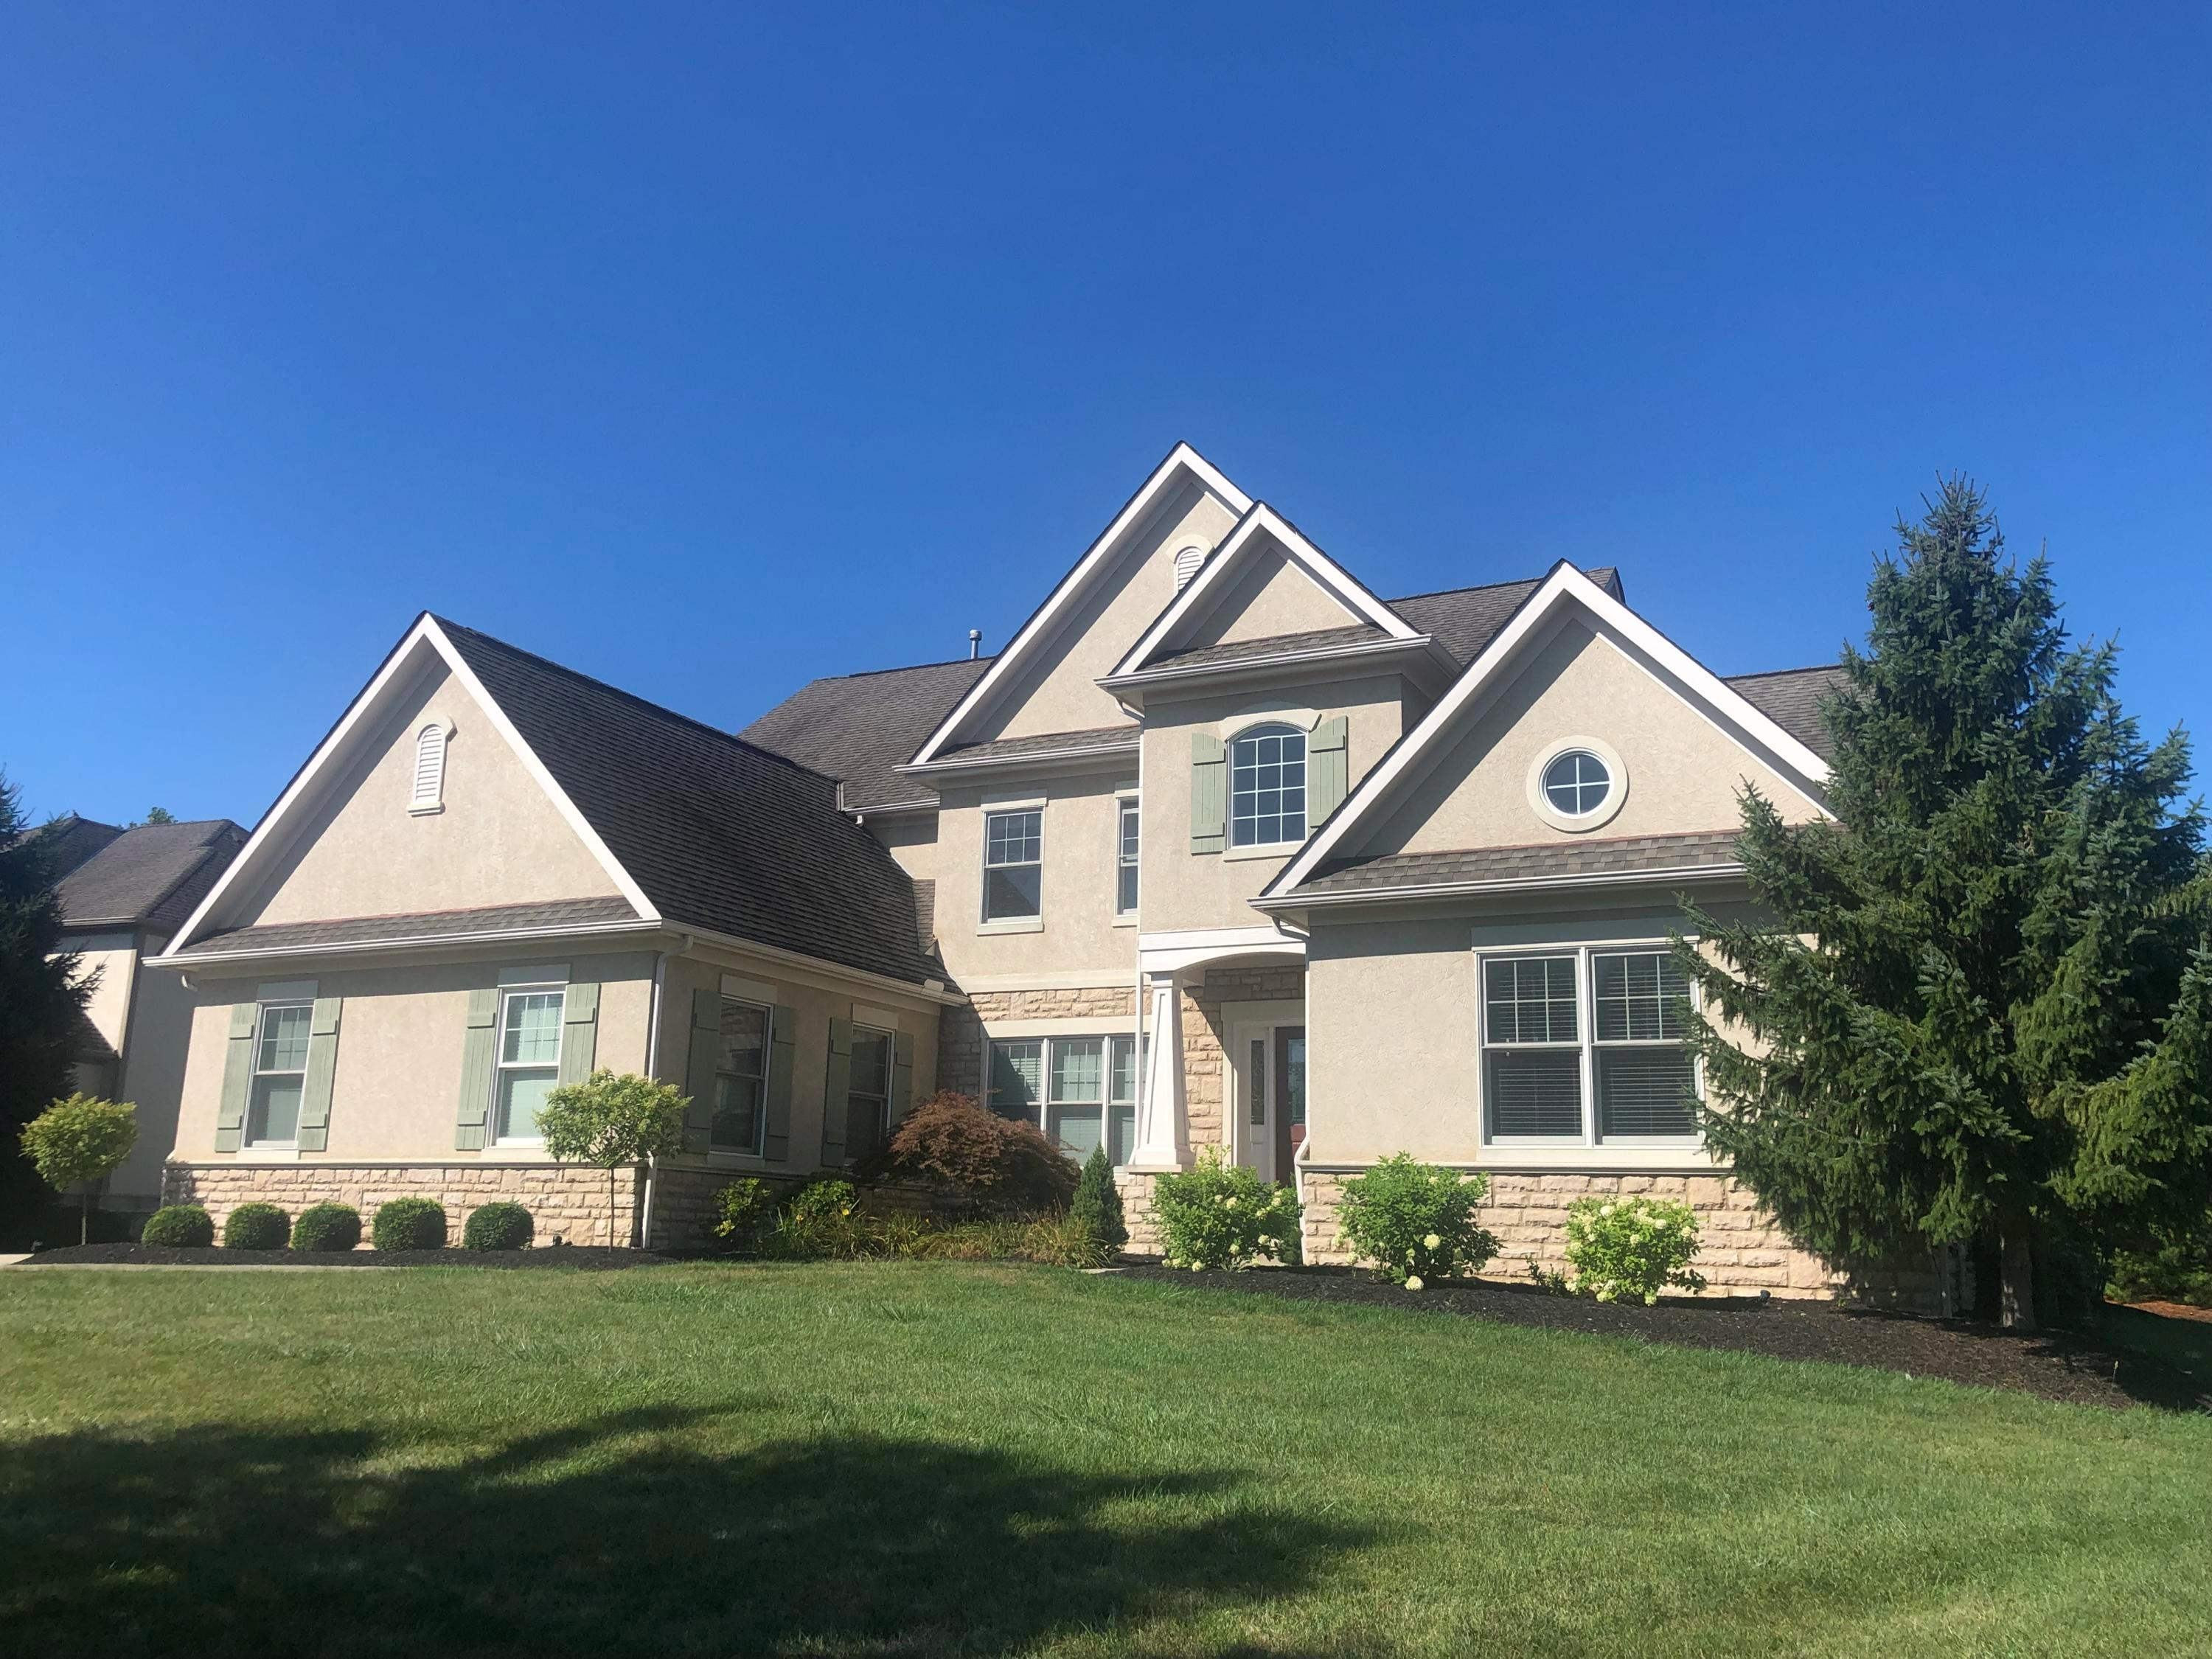 5340 Gordon Way, Dublin, Ohio 43017, 5 Bedrooms Bedrooms, ,5 BathroomsBathrooms,Residential,For Sale,Gordon,219032677